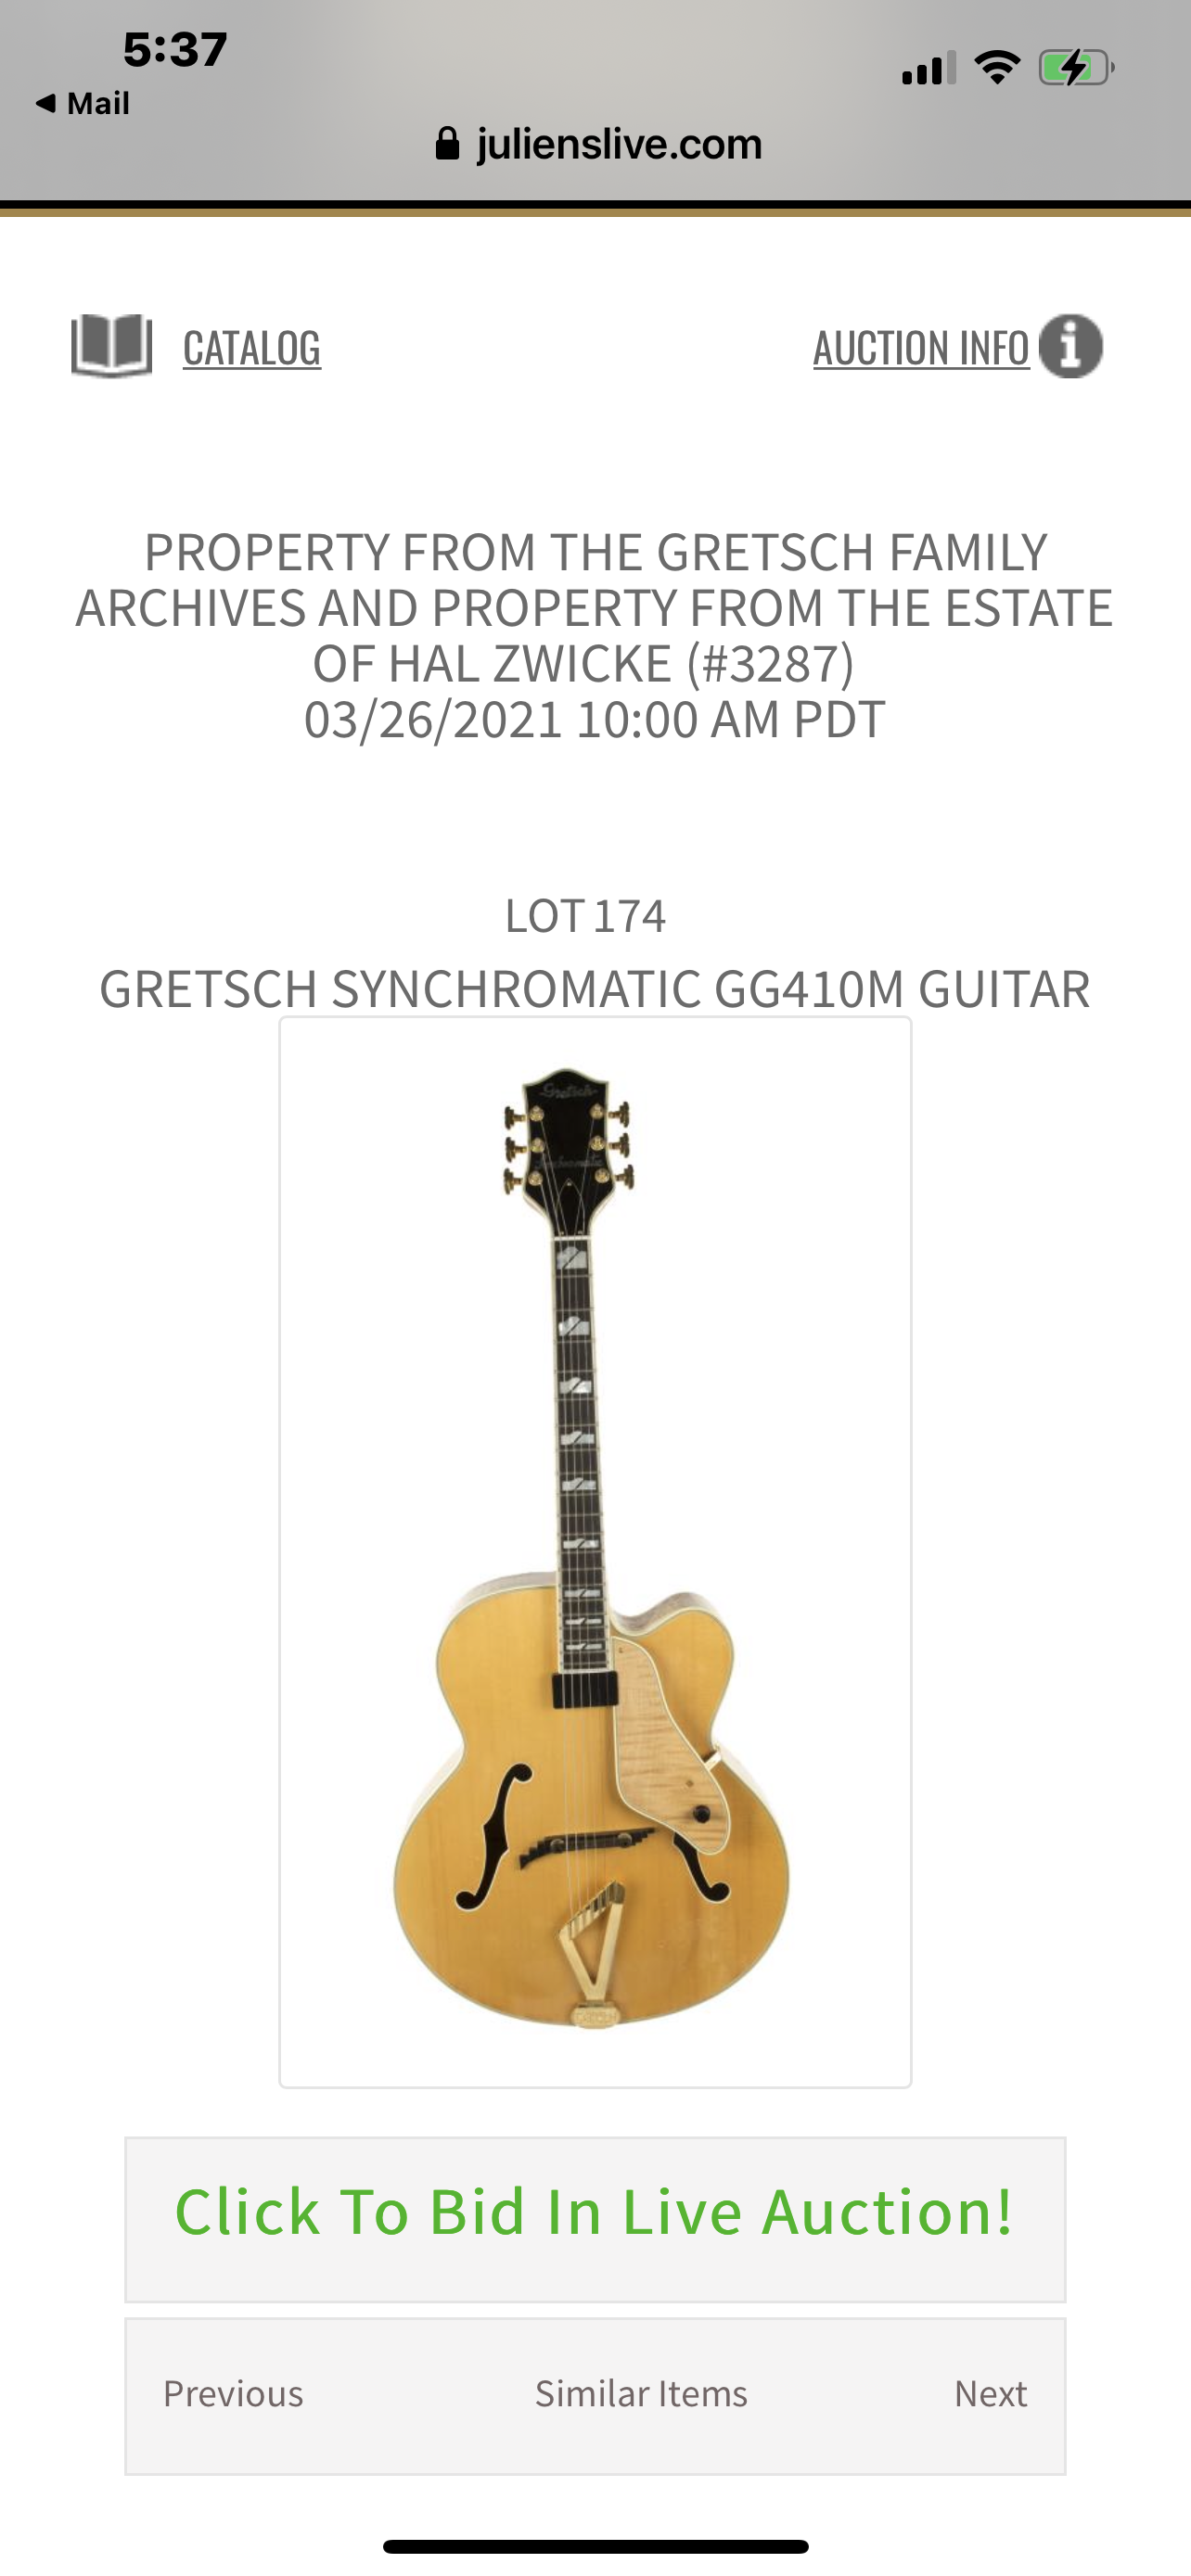 Do you dig Gretschs? Check out these.......-c1dbda42-2e8a-4214-93e0-5fa7155a653a-png